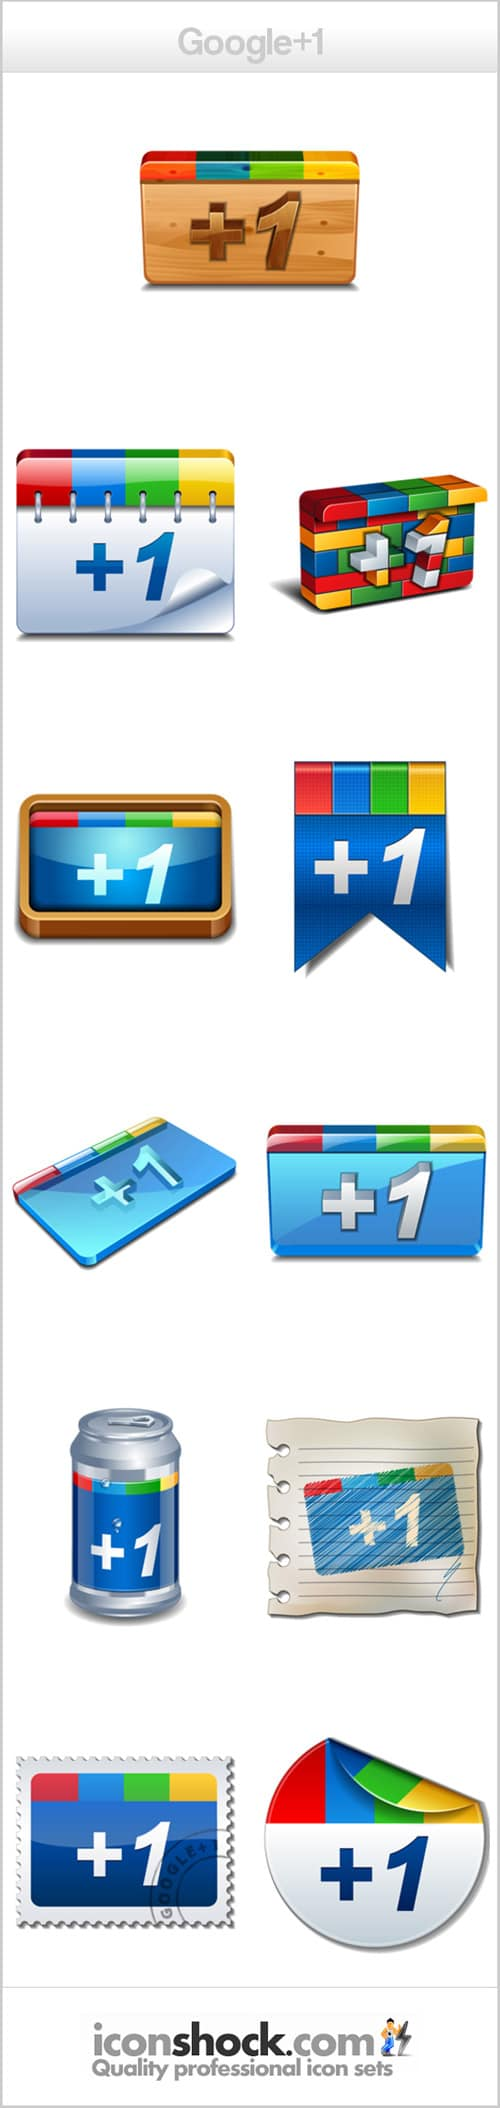 Google plus icons by Iconshock